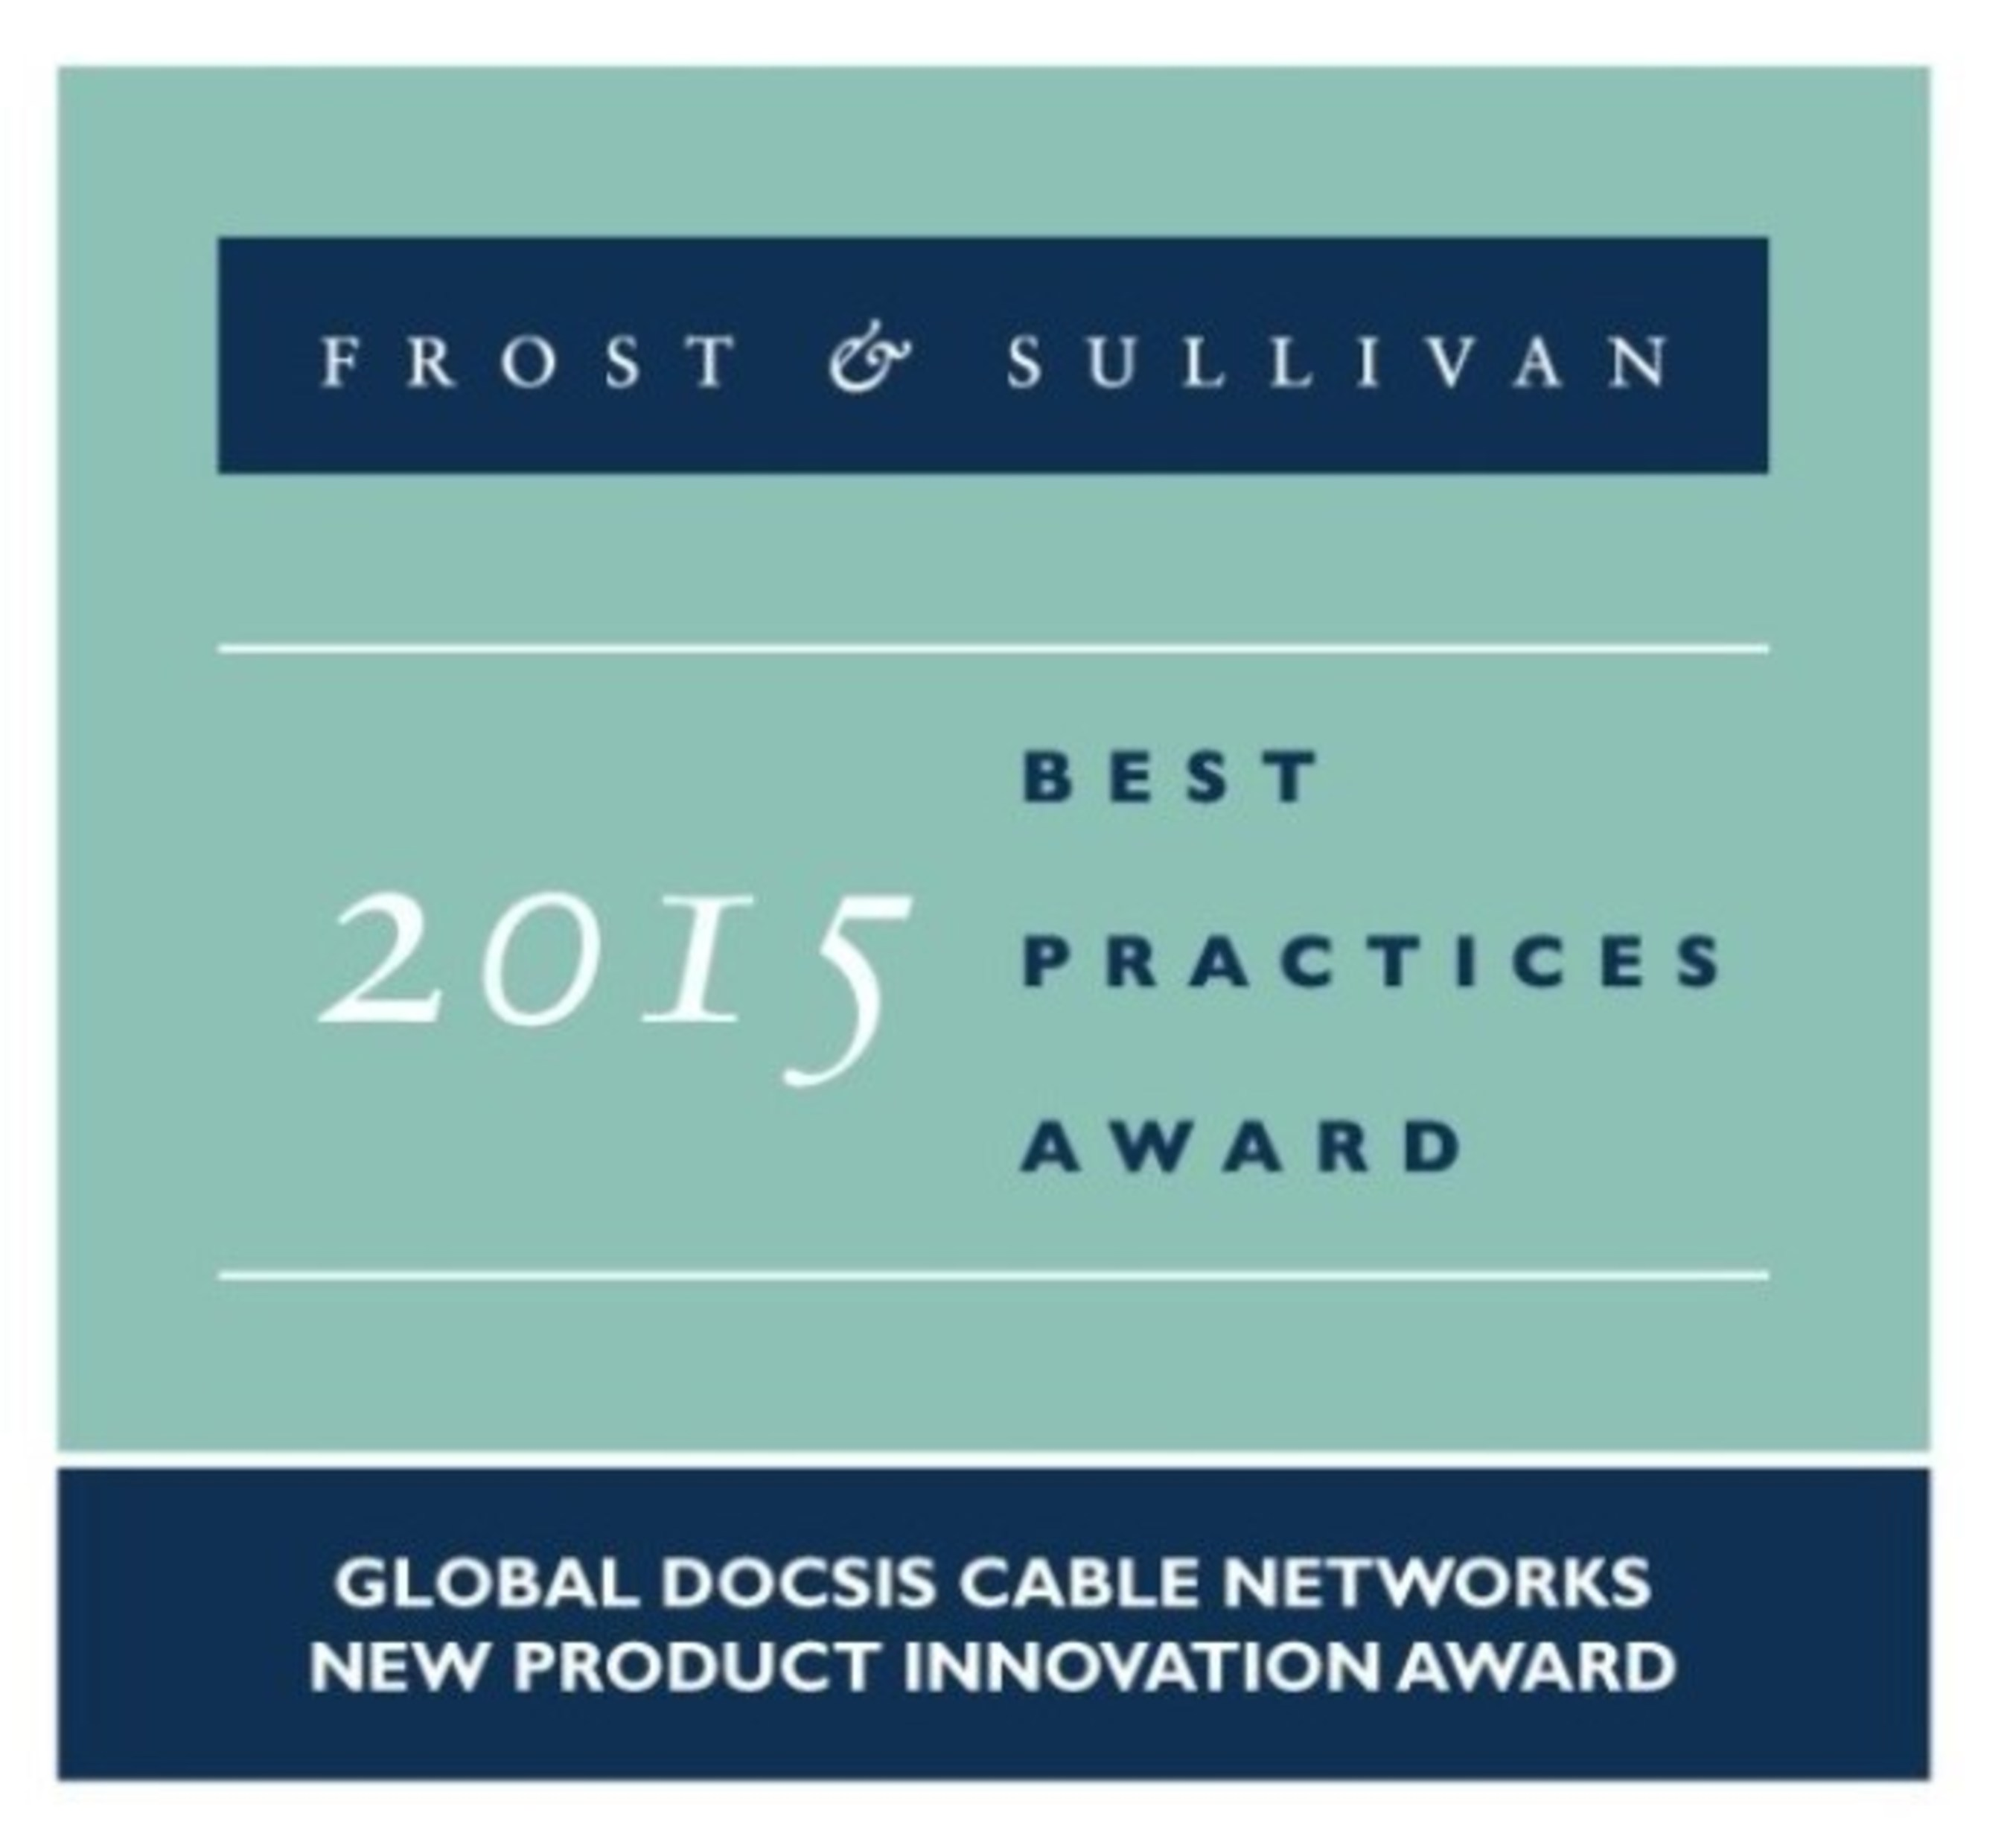 Averna Receives the 2015 Global DOCSIS Cable Networks New Product Innovation Award from Frost & Sullivan